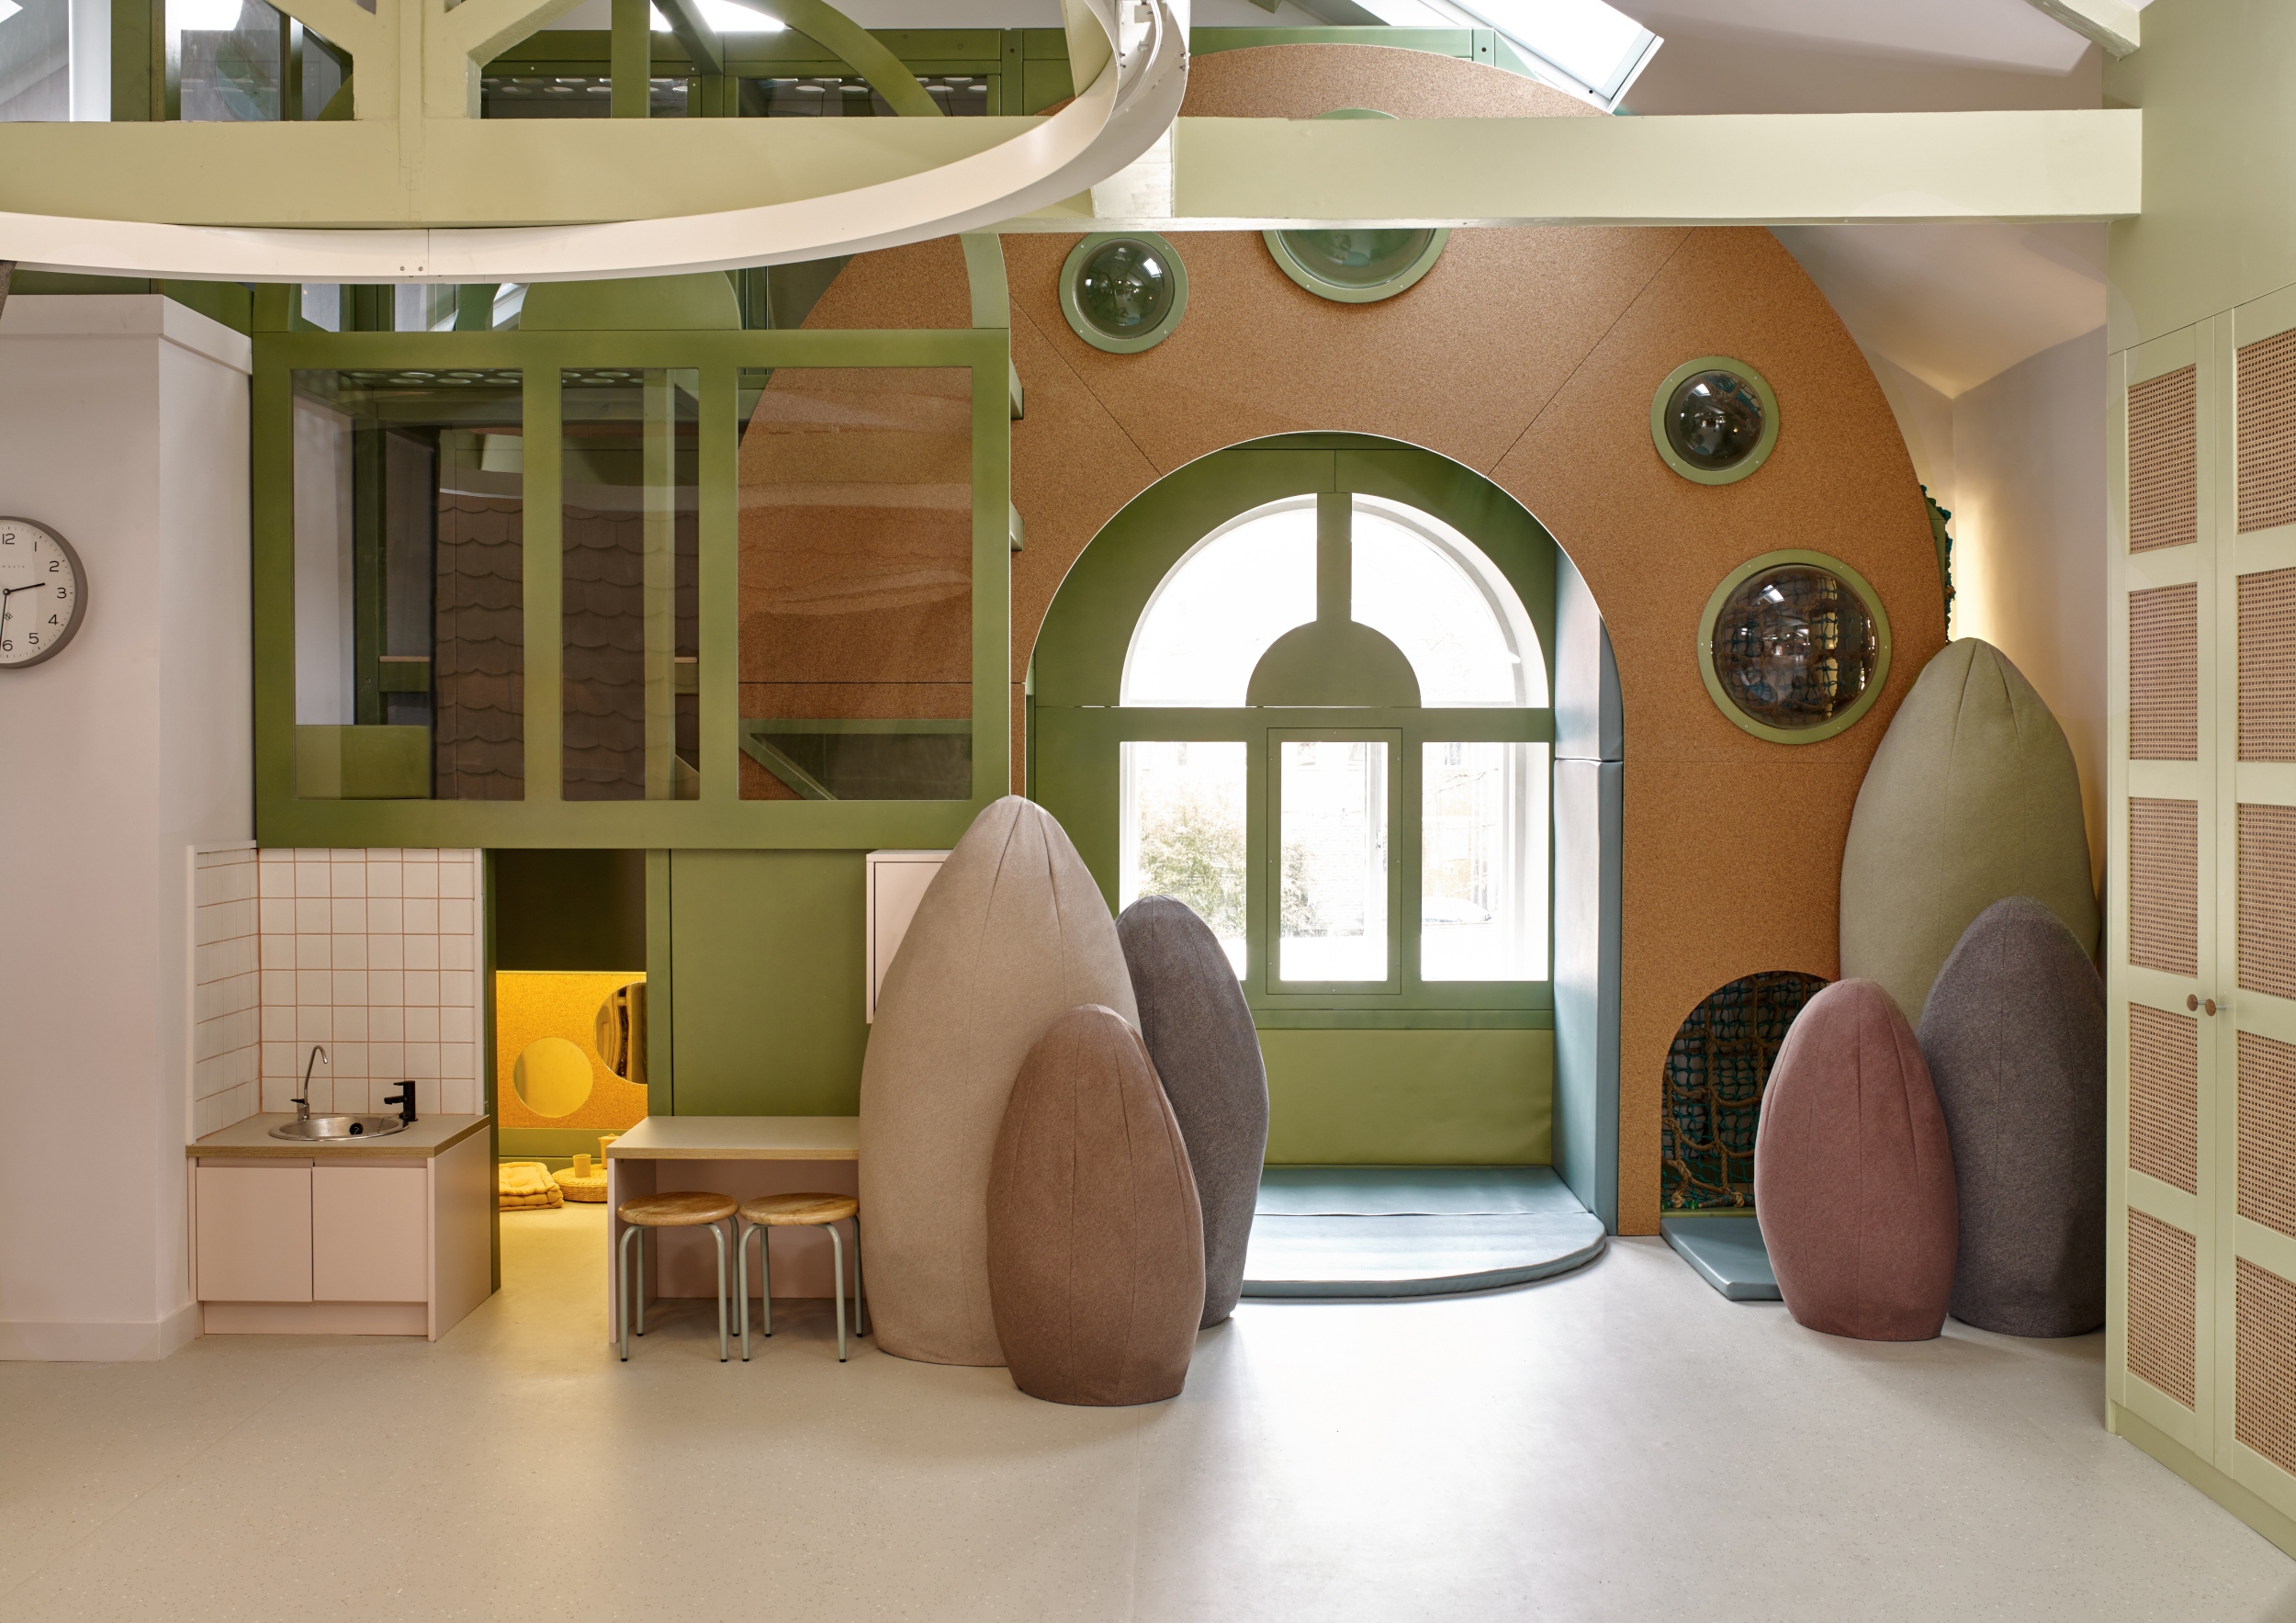 More parts of the new refurbishment of the nursery, including a new play area for kids to try out